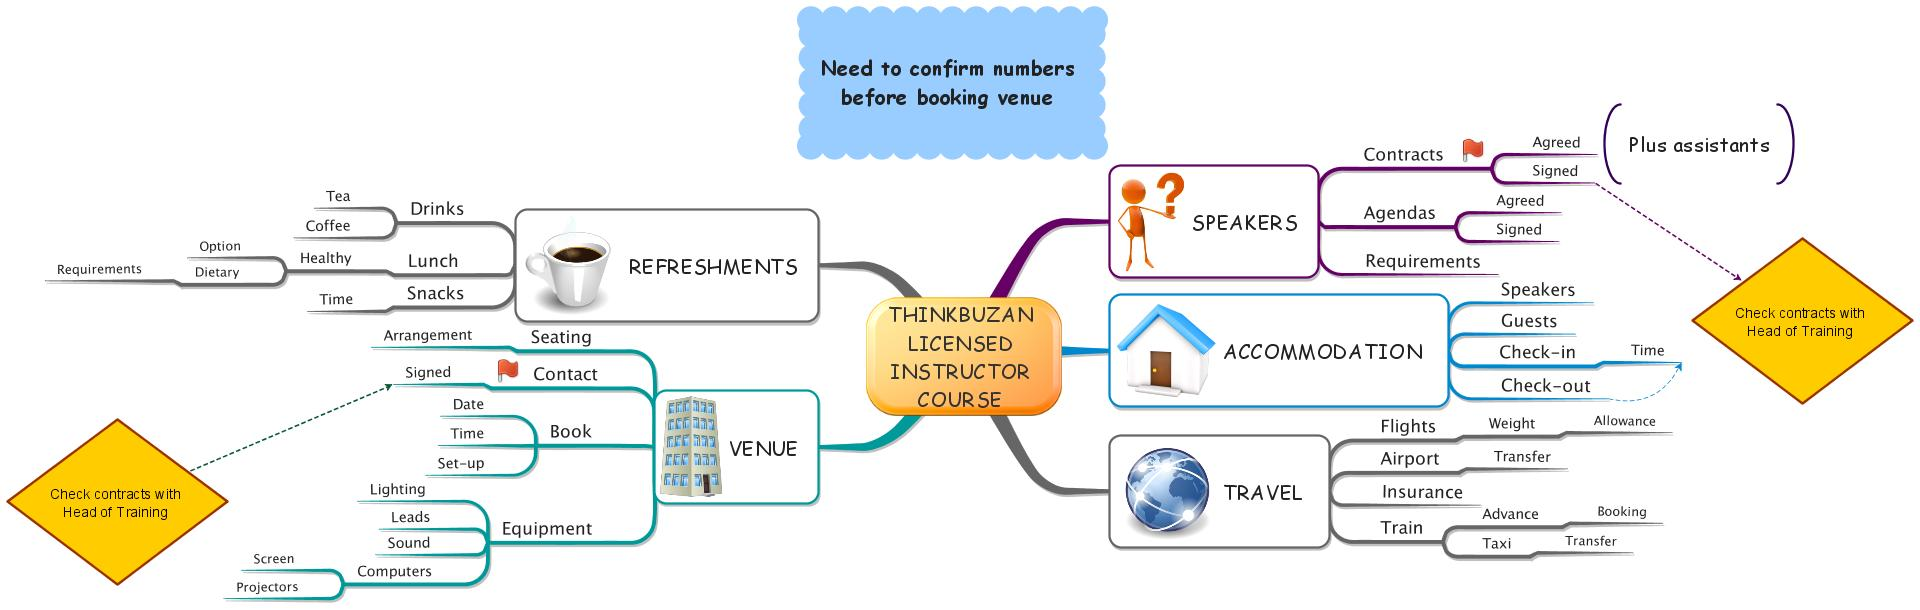 iMindMap: ThinkBuzan Licensed Instructor Course